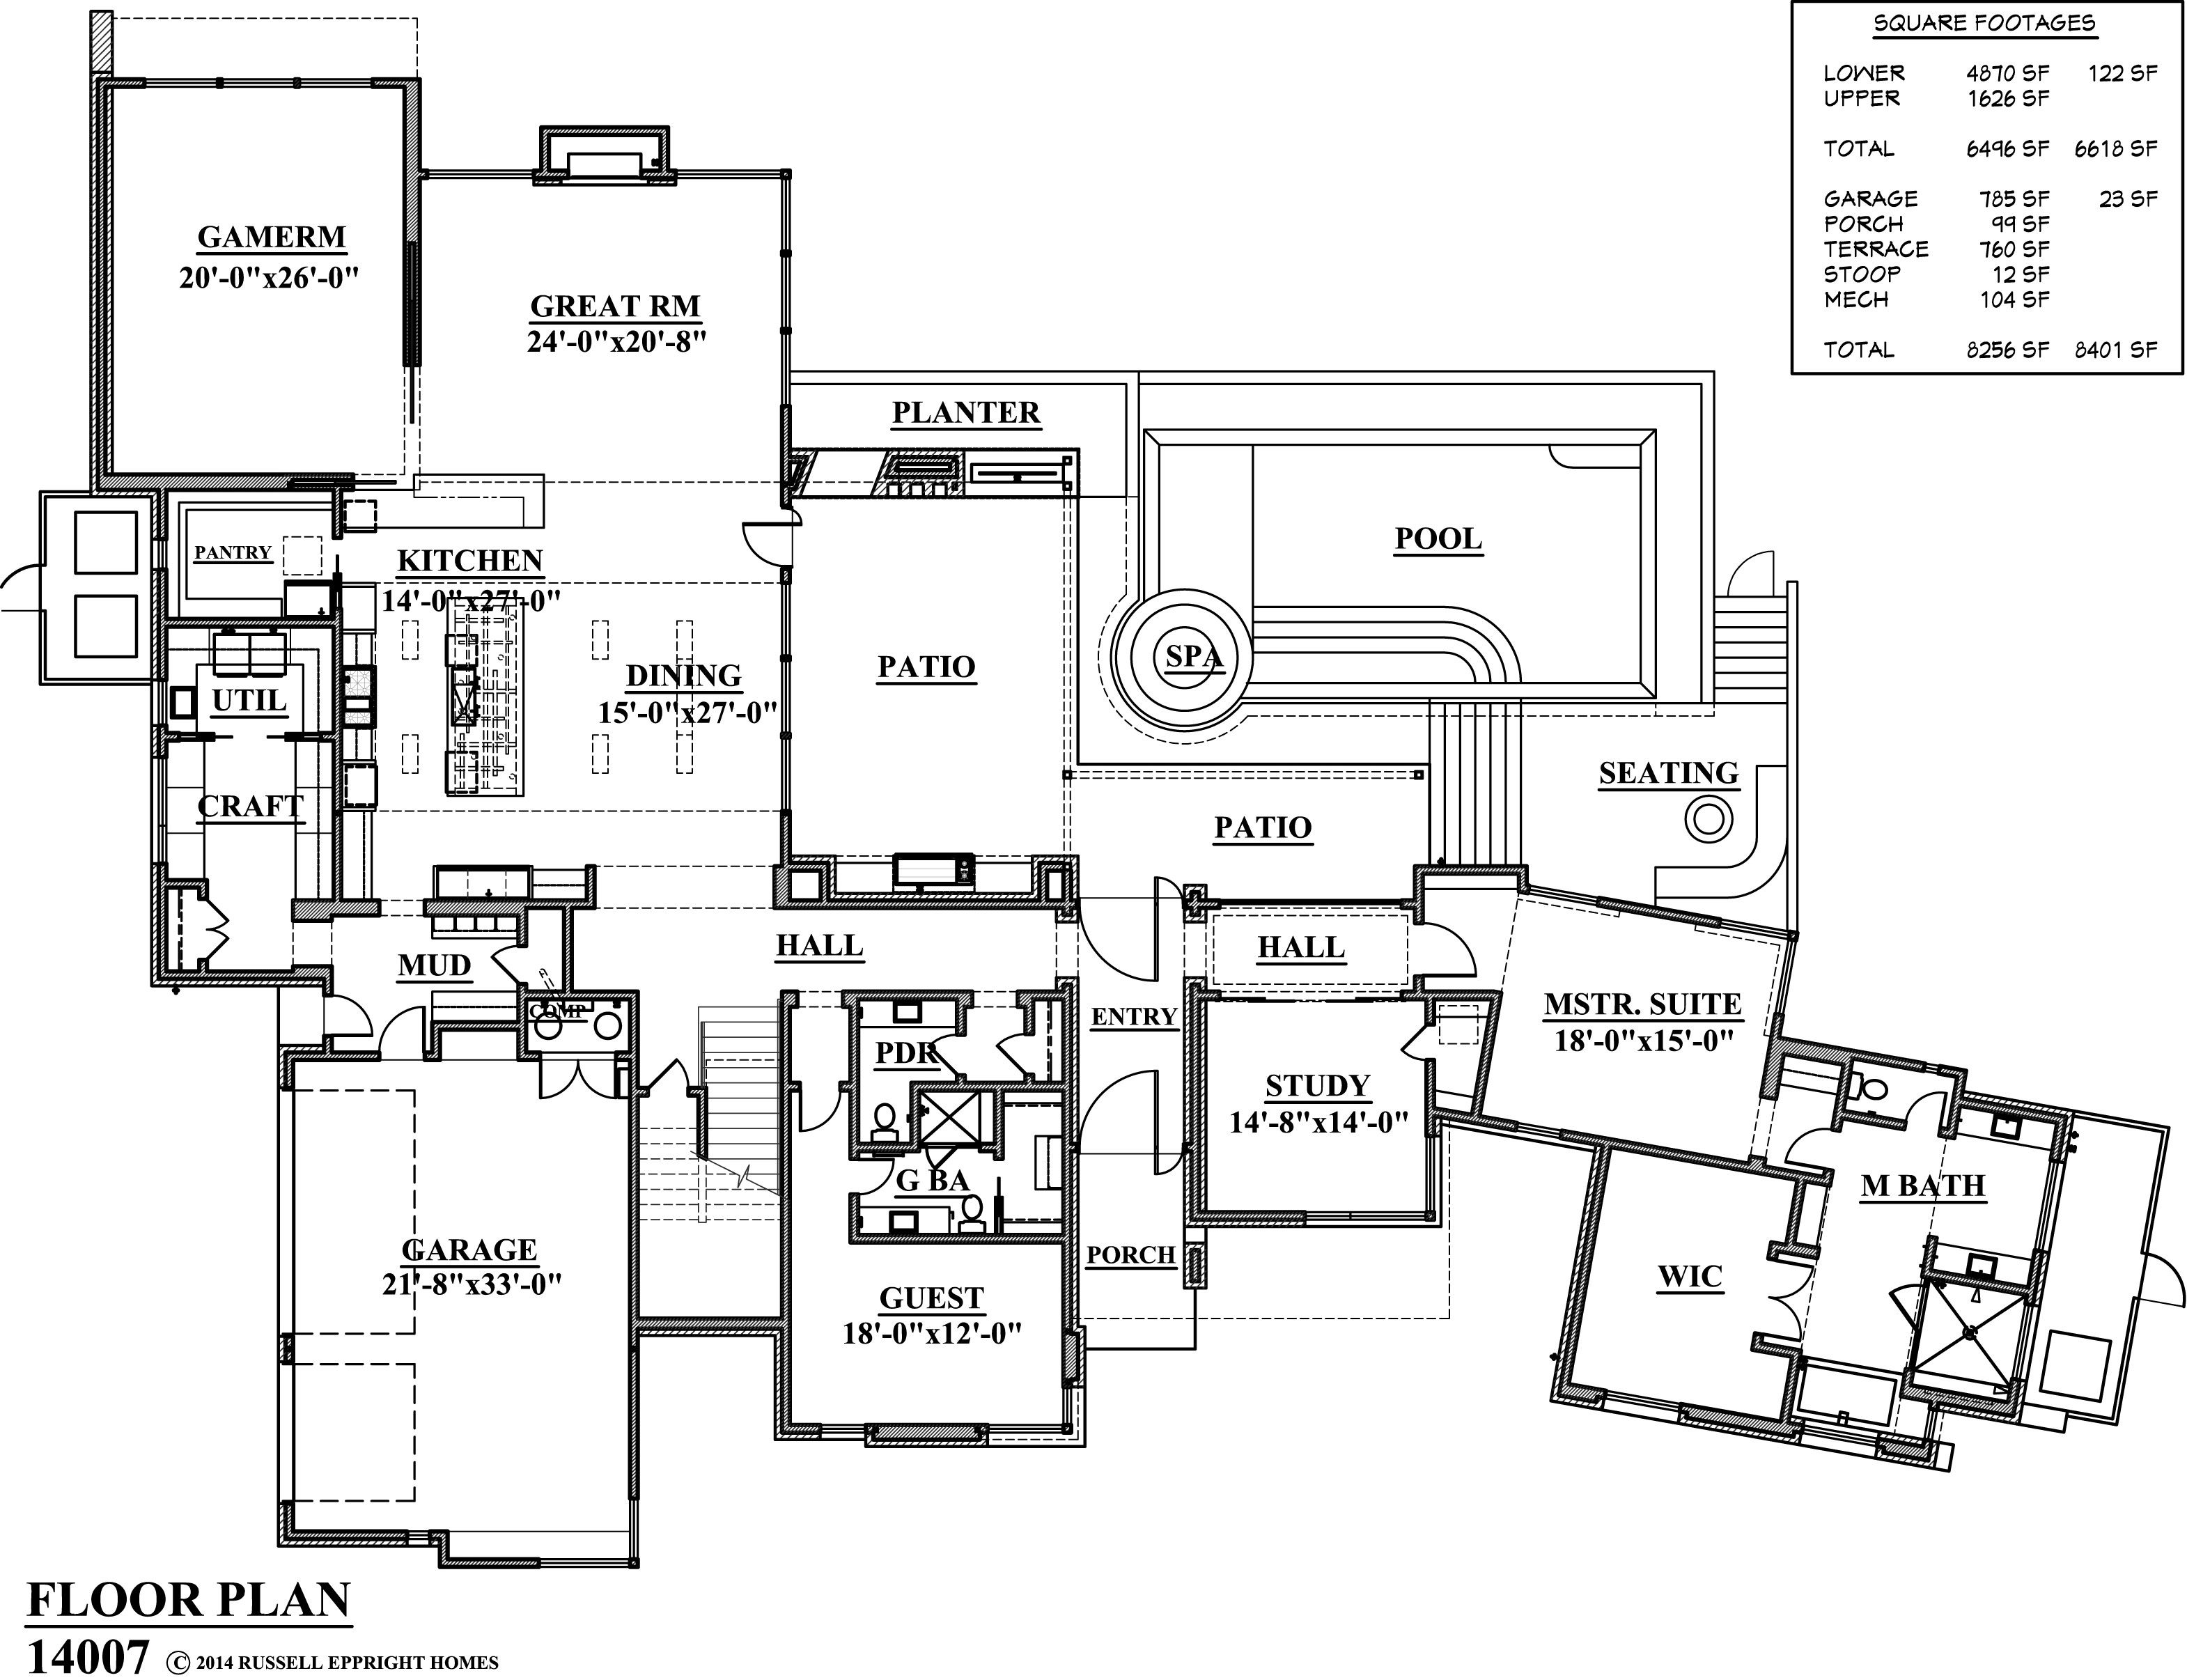 Cornerstone arch plan bob wetmore architect floor plan for Bob house plans